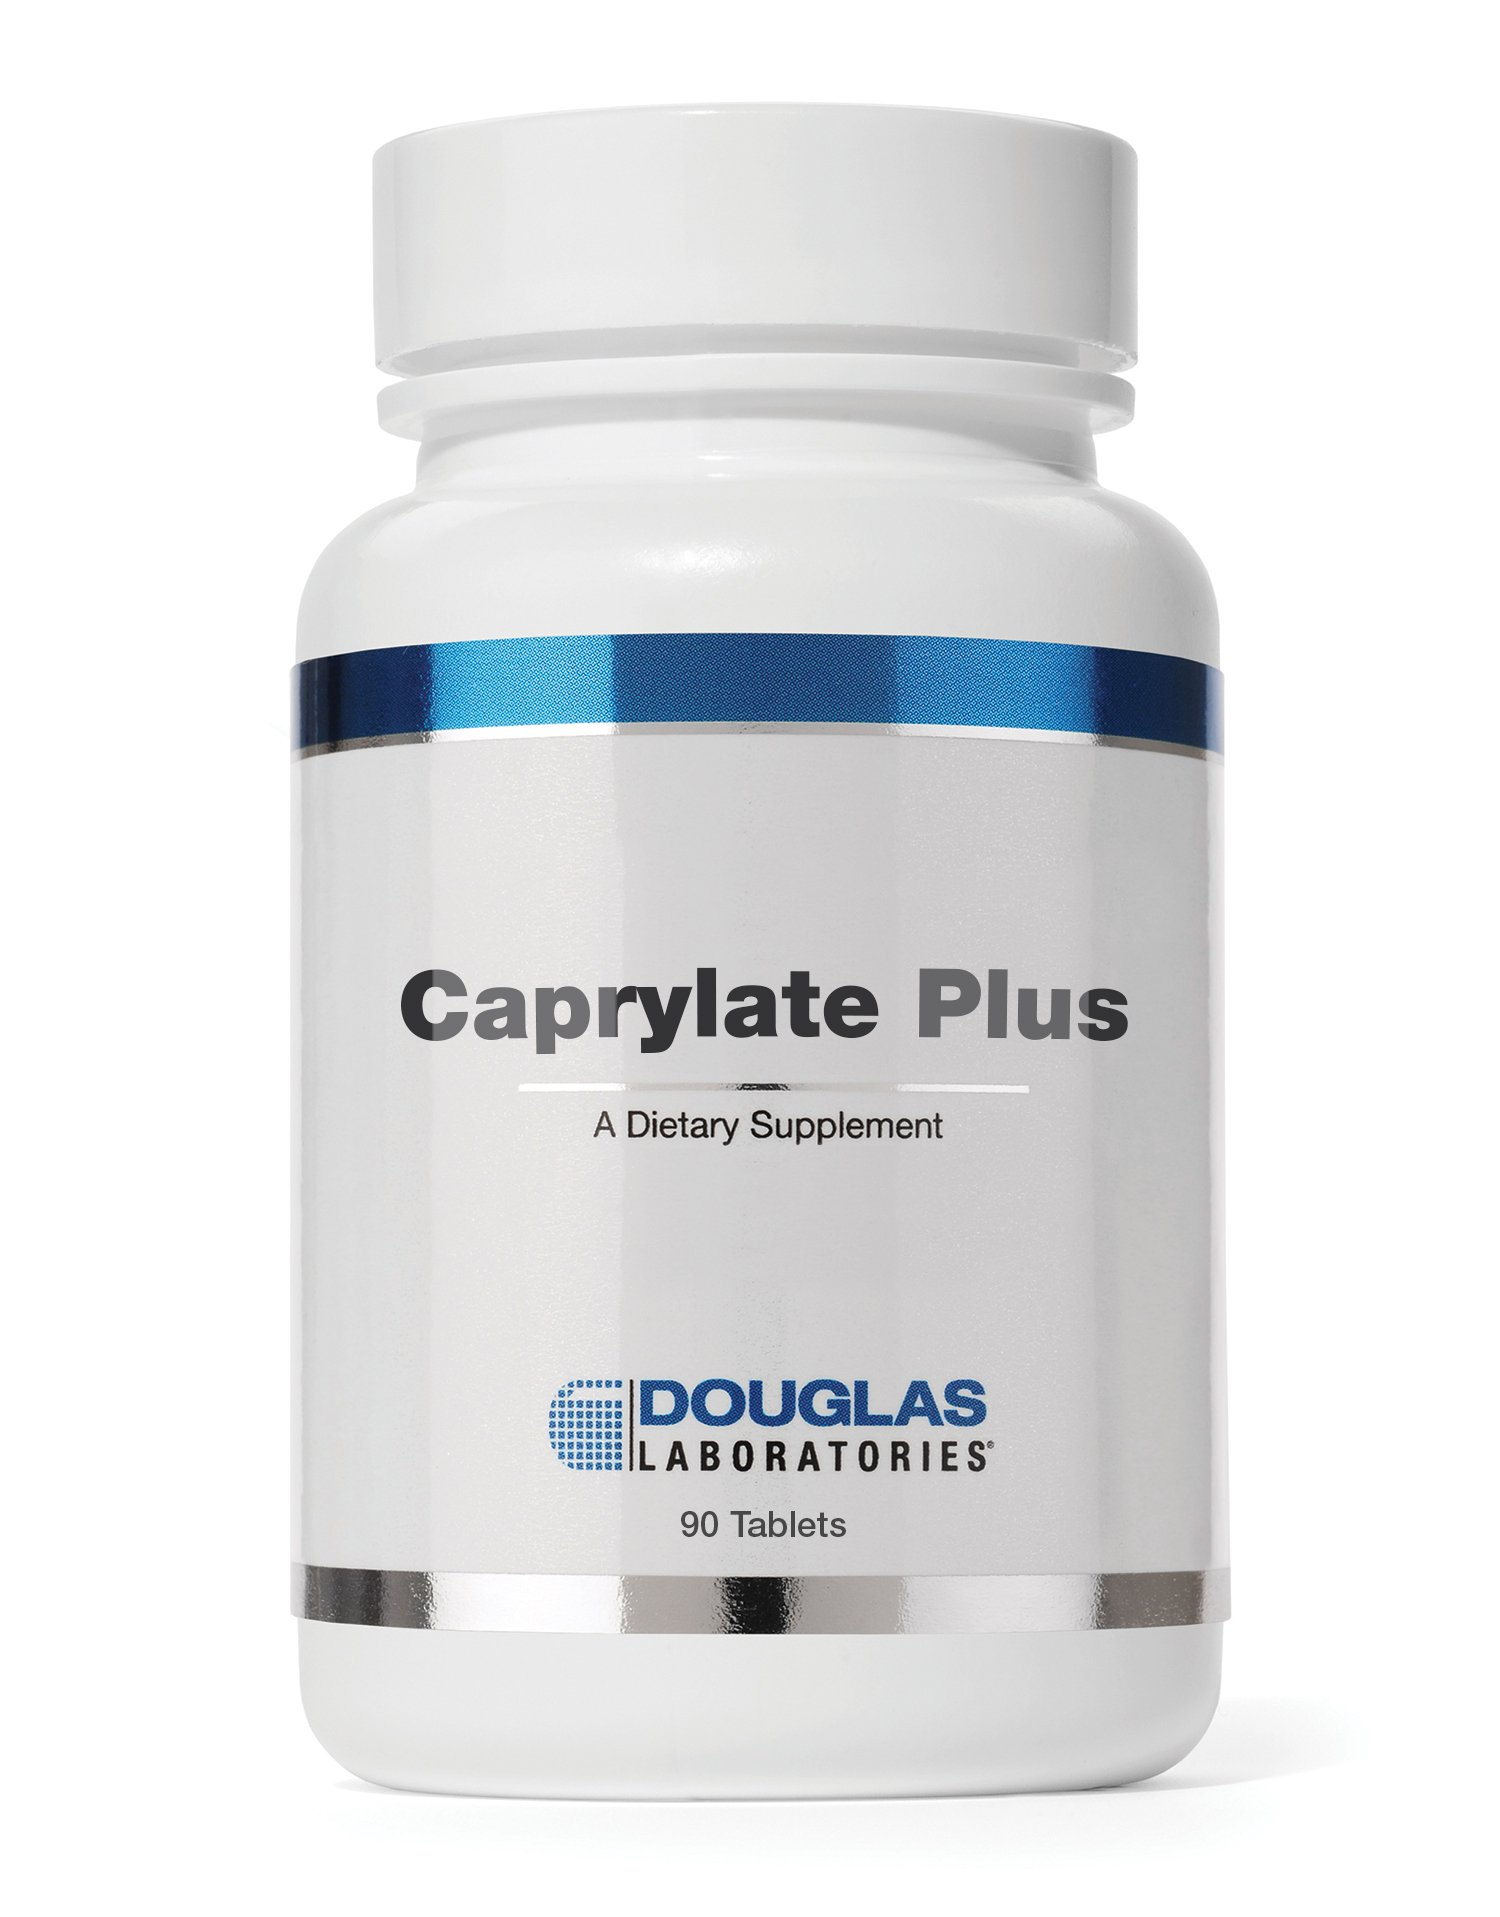 Douglas Laboratories - Caprylate Plus (Formerly Candistat) - Caprylic Acid for Normal Microecology of the Intestinal Microflora* - 90 Tablets